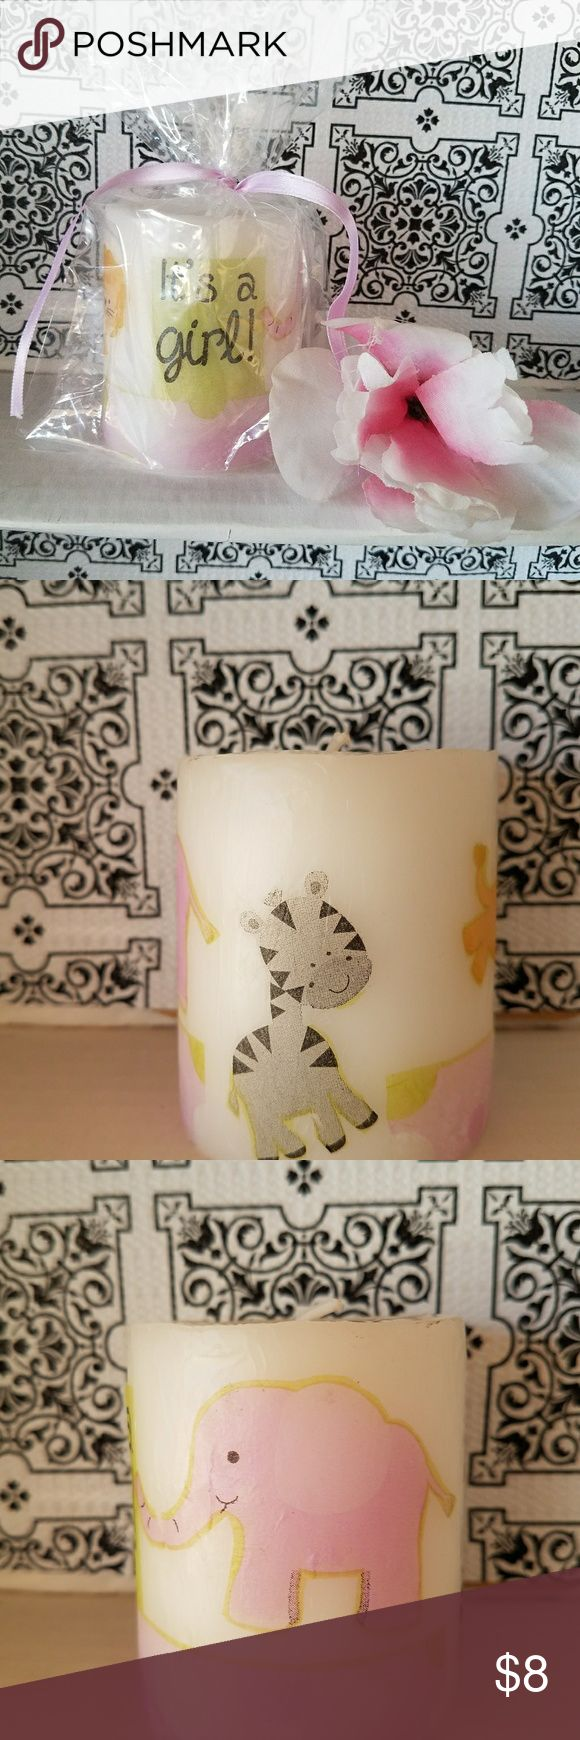 """New Specialty Candle New """"It's A Girl"""" 8 ounce Candle.  Perfect for a baby shower, to give as a gift, or simply keep for yourself. Suggested retail price is 12.99. Selling for 8. No lowballers, only serious buyers.  No holds, FCFS. J Street and Owens area 89106. Shipping available. Other"""